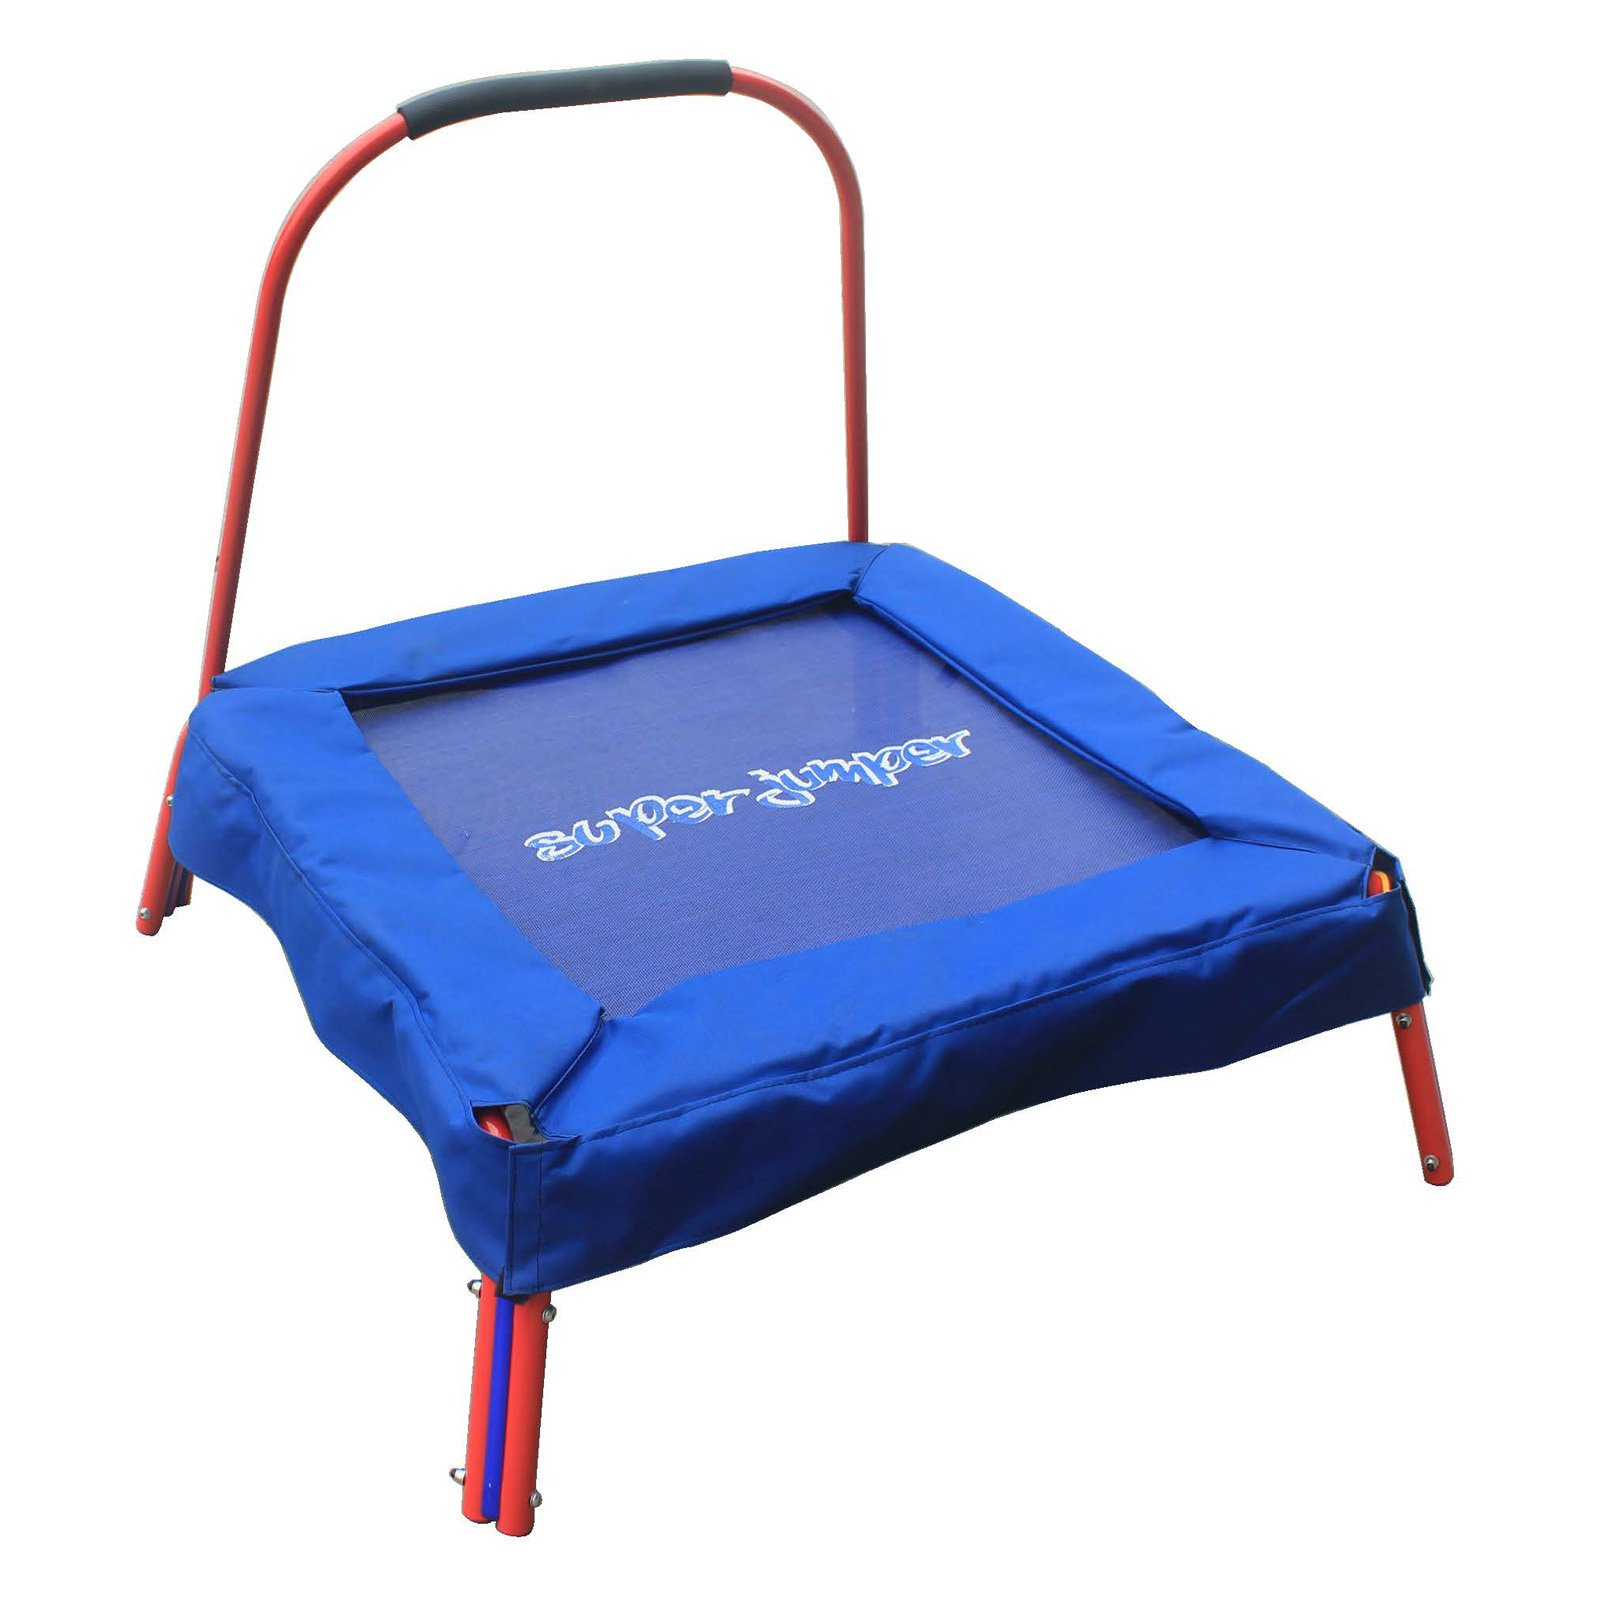 Super Jumper Junior Trampoline